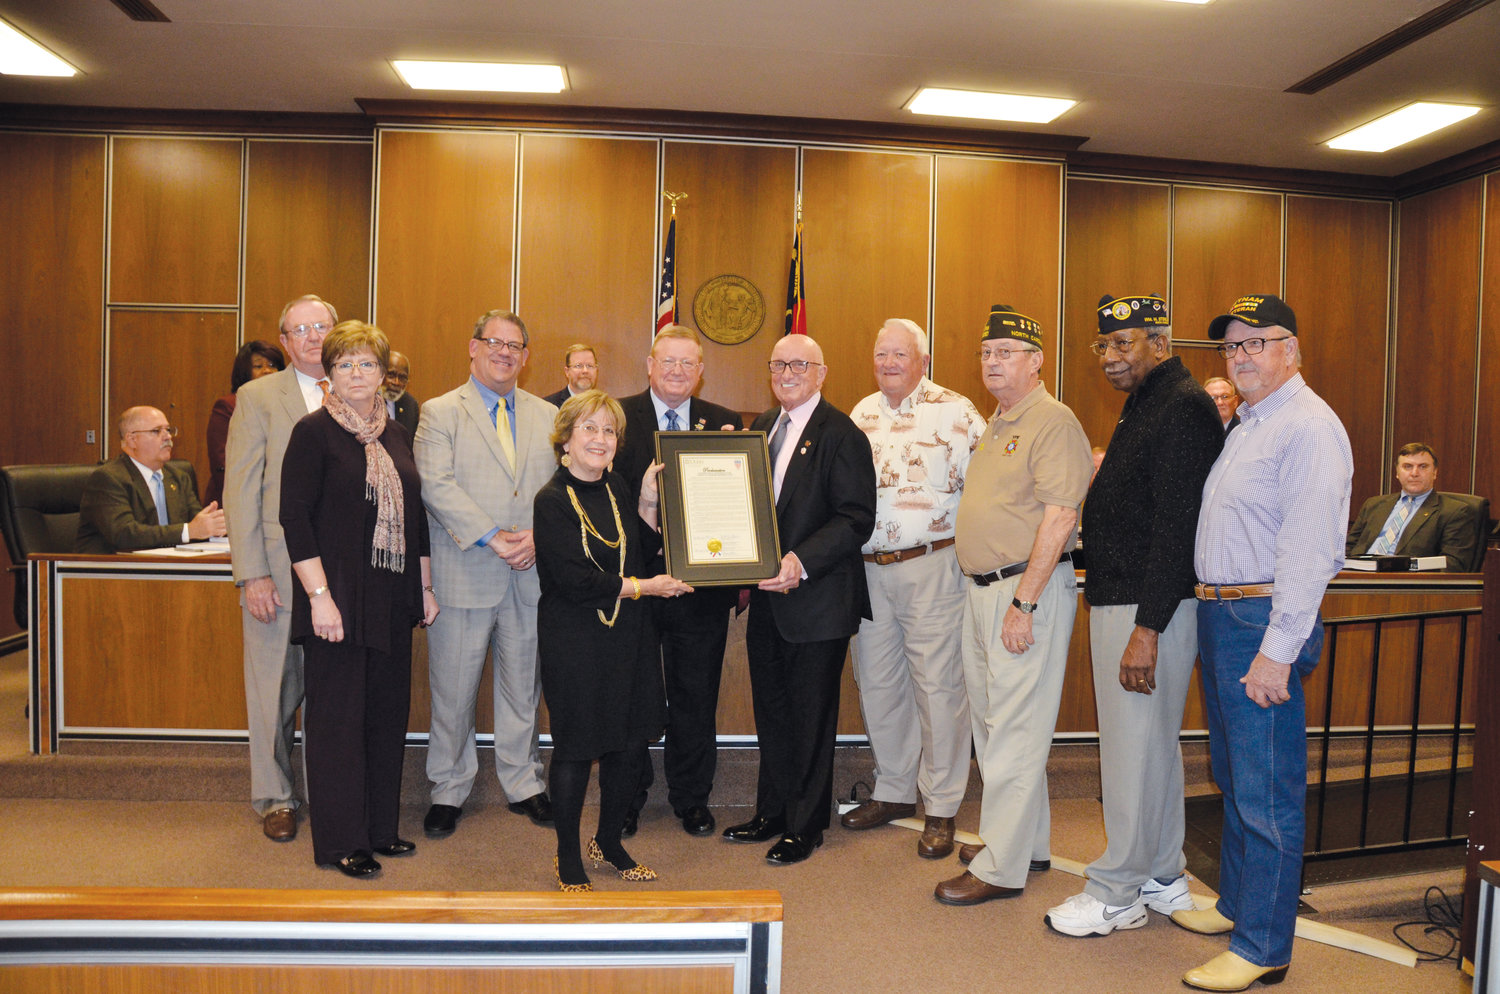 Honoring Veterans Treatment Court are from left, retired Judge Andy Corbett, Clerk of Court Marsha Johnson, District Attorney Vernon Stewart, Chief District Court Judge Jackie Lee, court Director Mark Teachey, American Legion Post 59 Commander and Mayor Oscar Harris, former state Legion Commander Eric Sinclair, VFW Post 6767 Commander Robbie Hardison, DAV Chapter 74 Commander John Woods and Johnston County Vietnam Veterans of America Chapter 990 Past Commander Ronnie Williams.